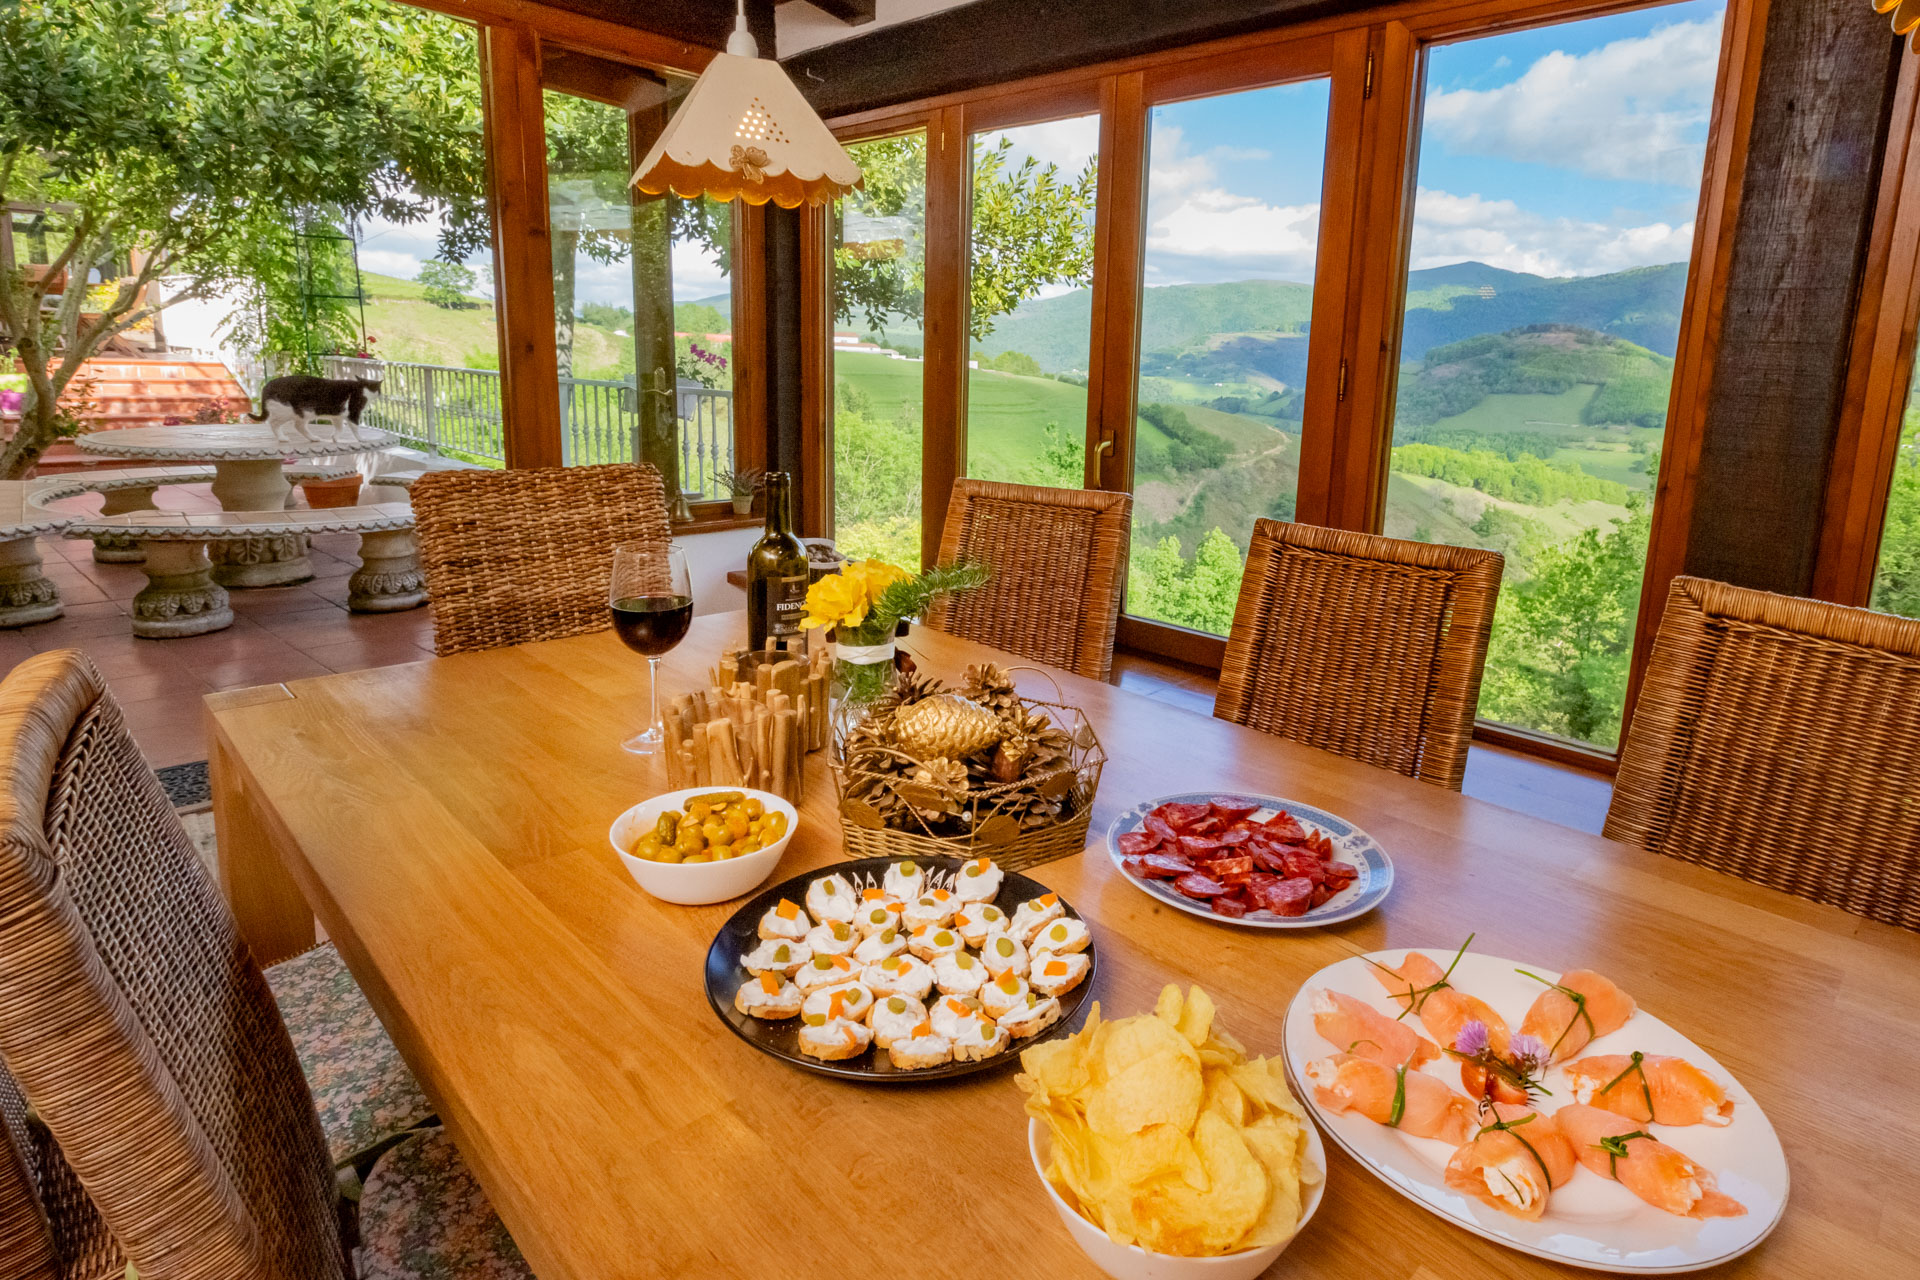 pyrenean experience - tapas and welcome for guests on our guided walking weeks in the Basque Country